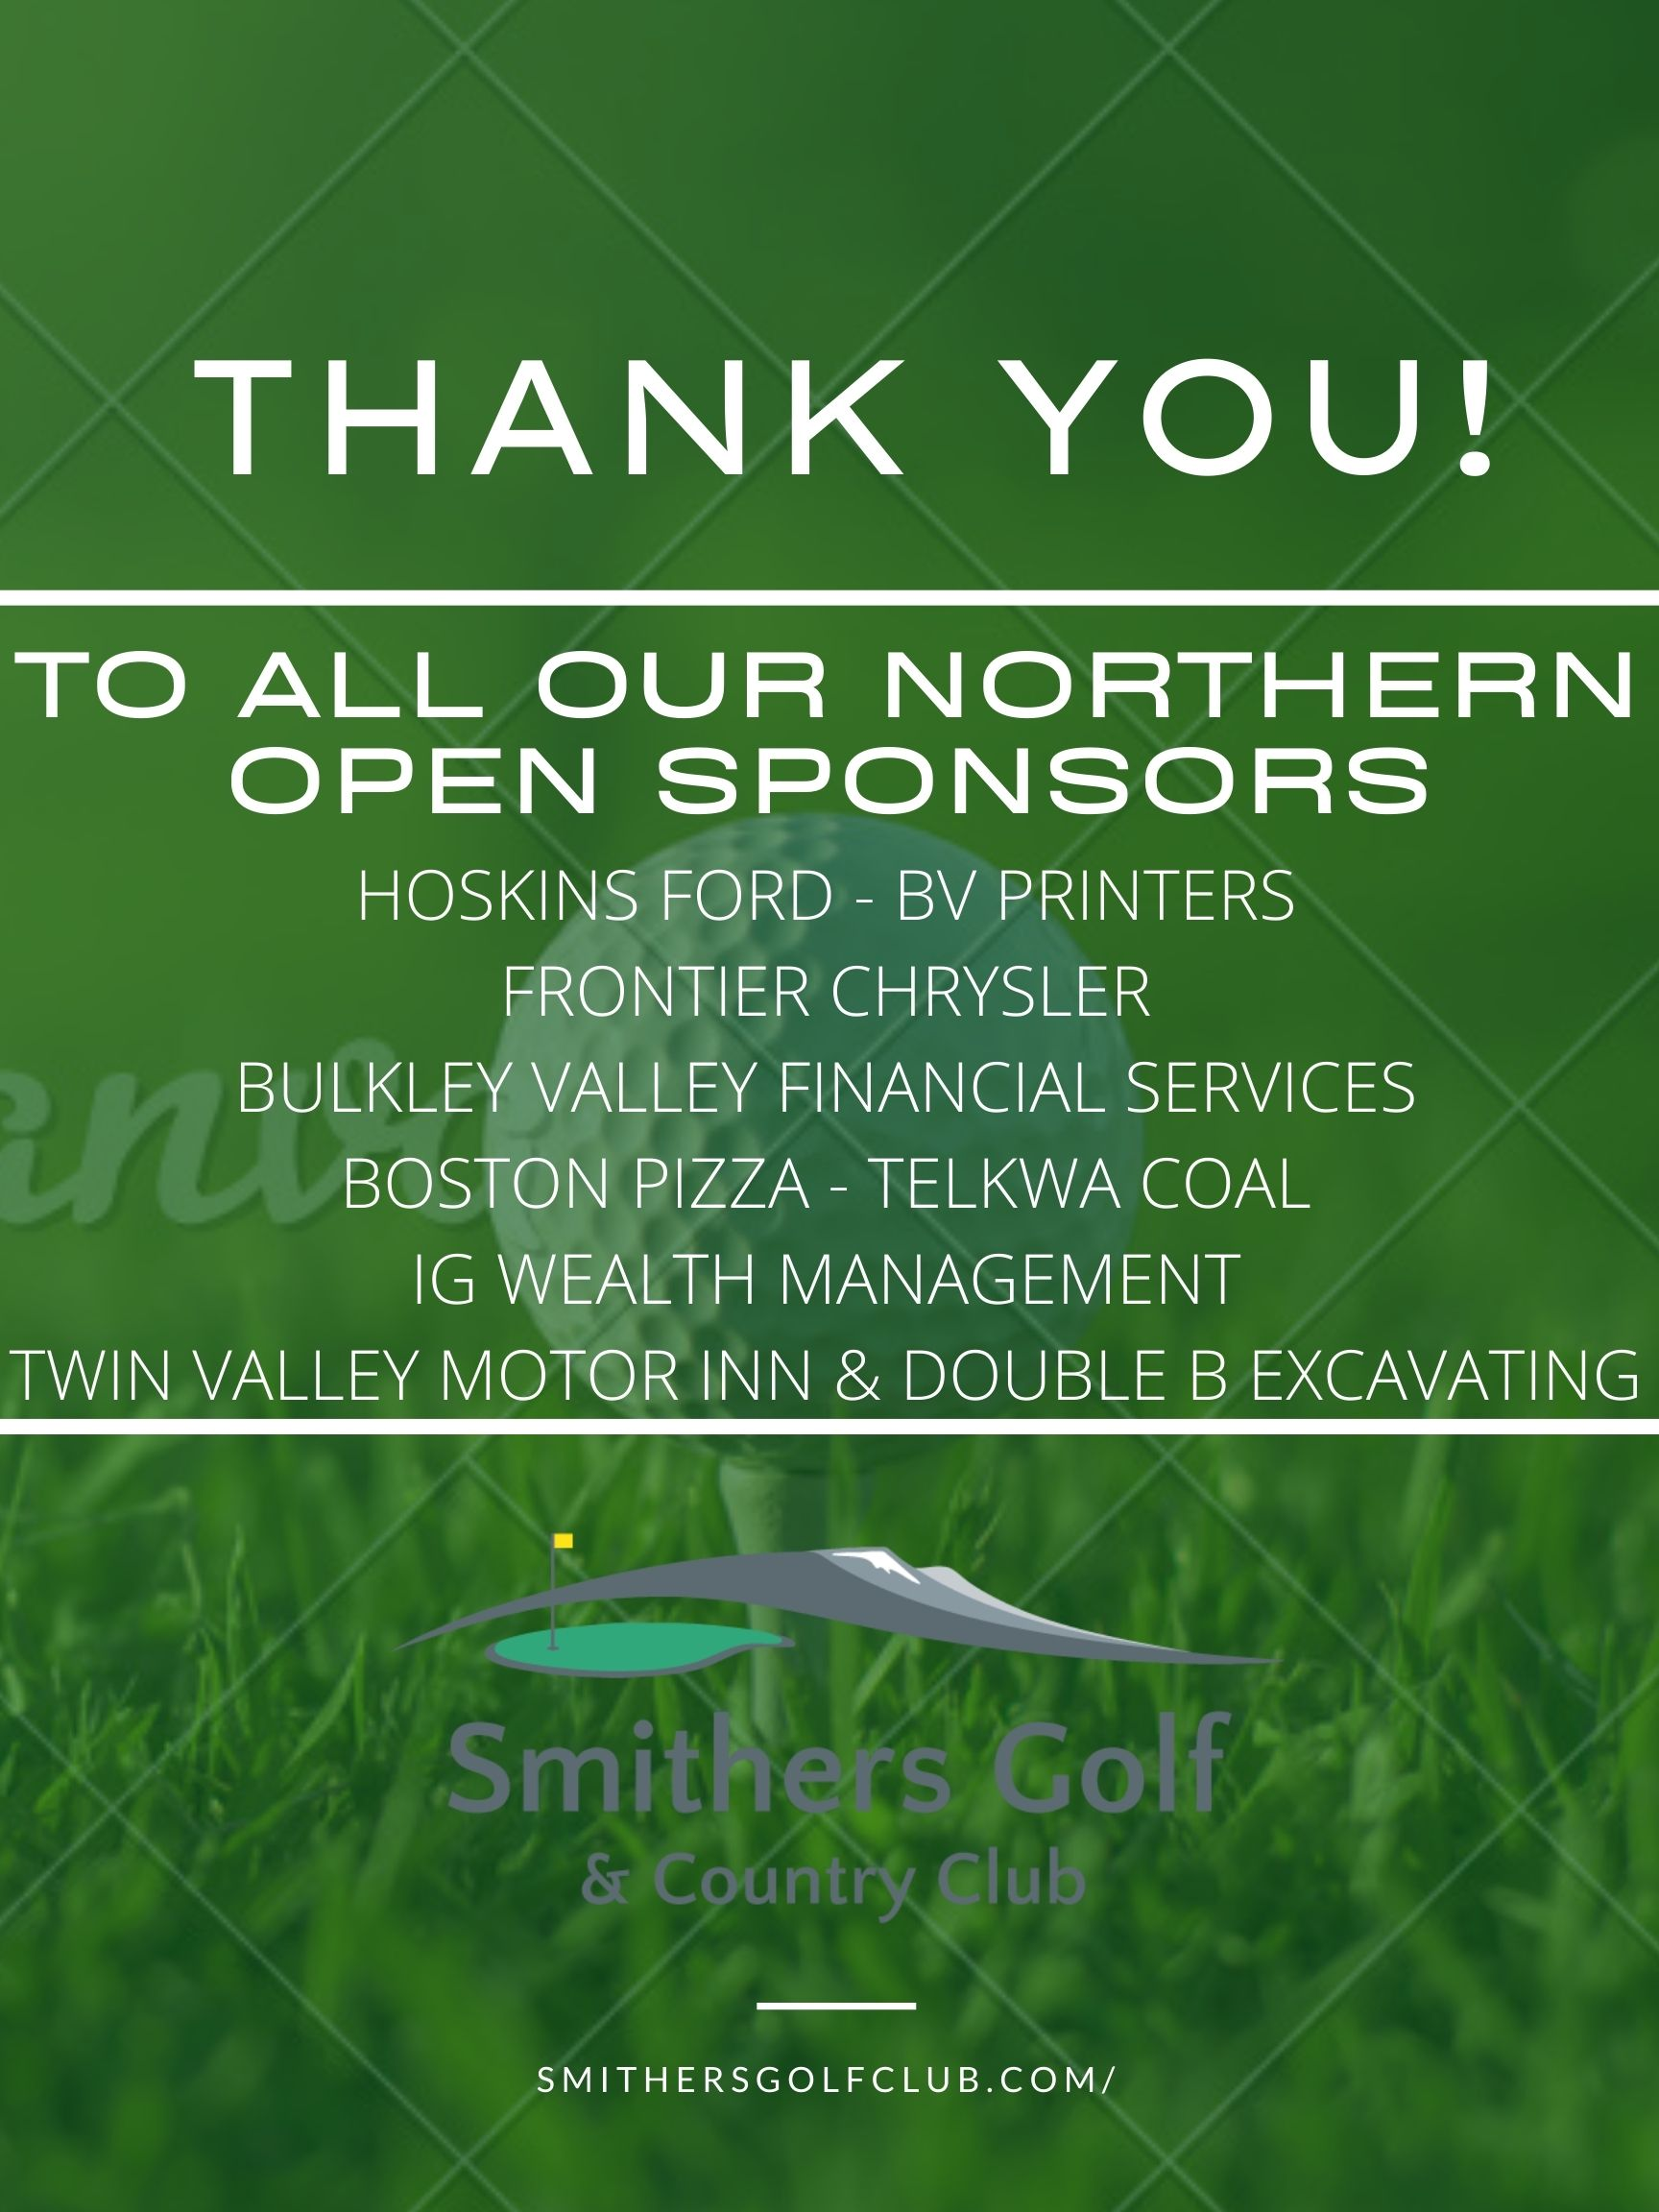 Thank you to our 2020 Northern Open Sponsors!